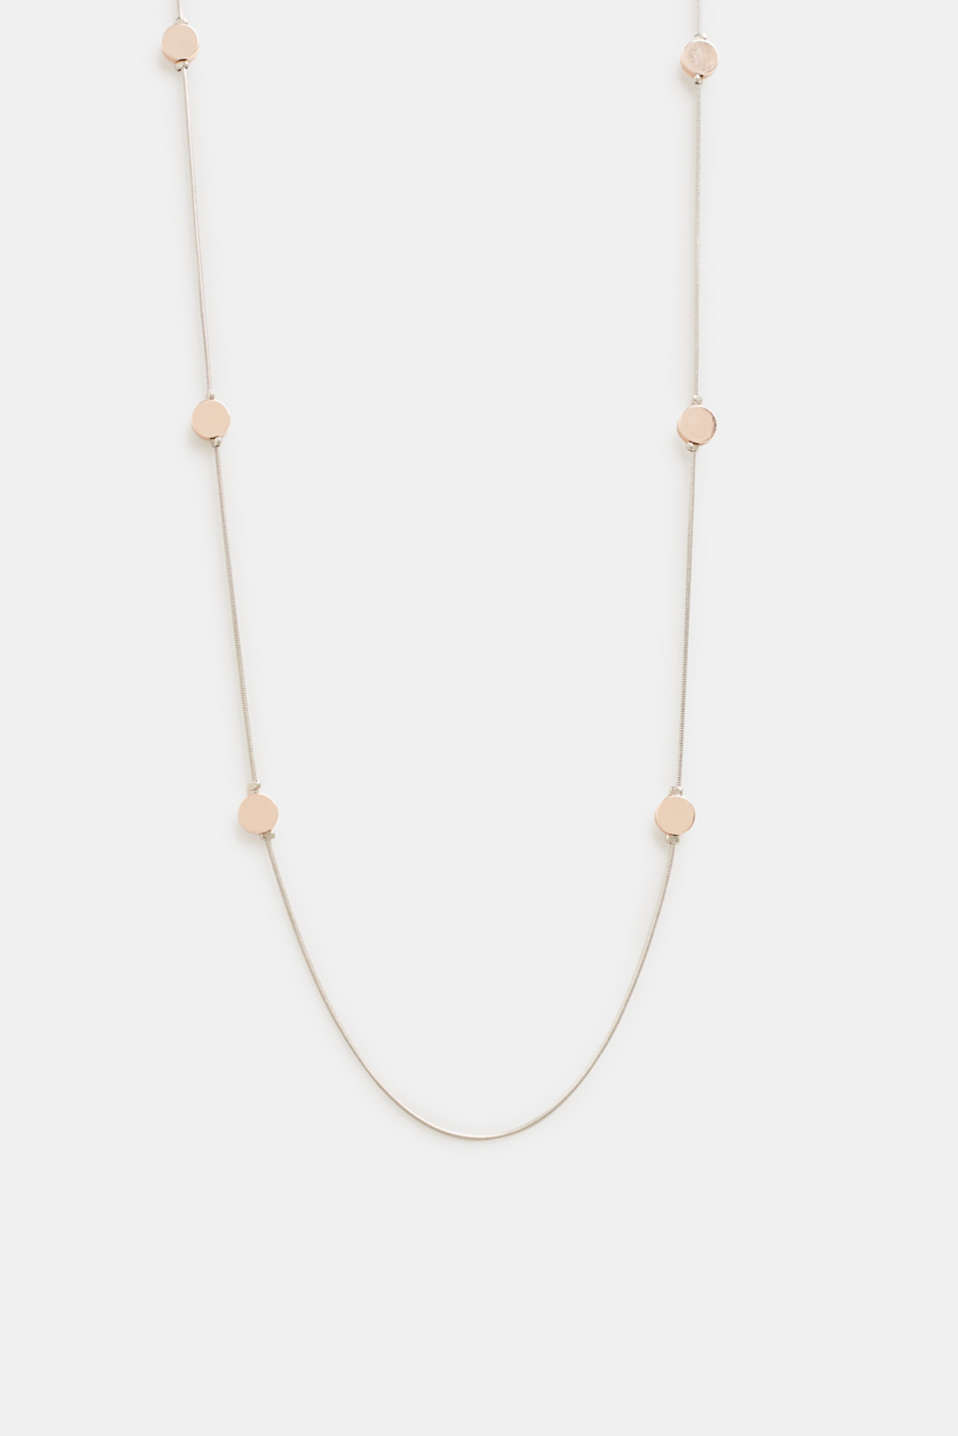 Necklace with little metal discs, ROSEGOLD, detail image number 0